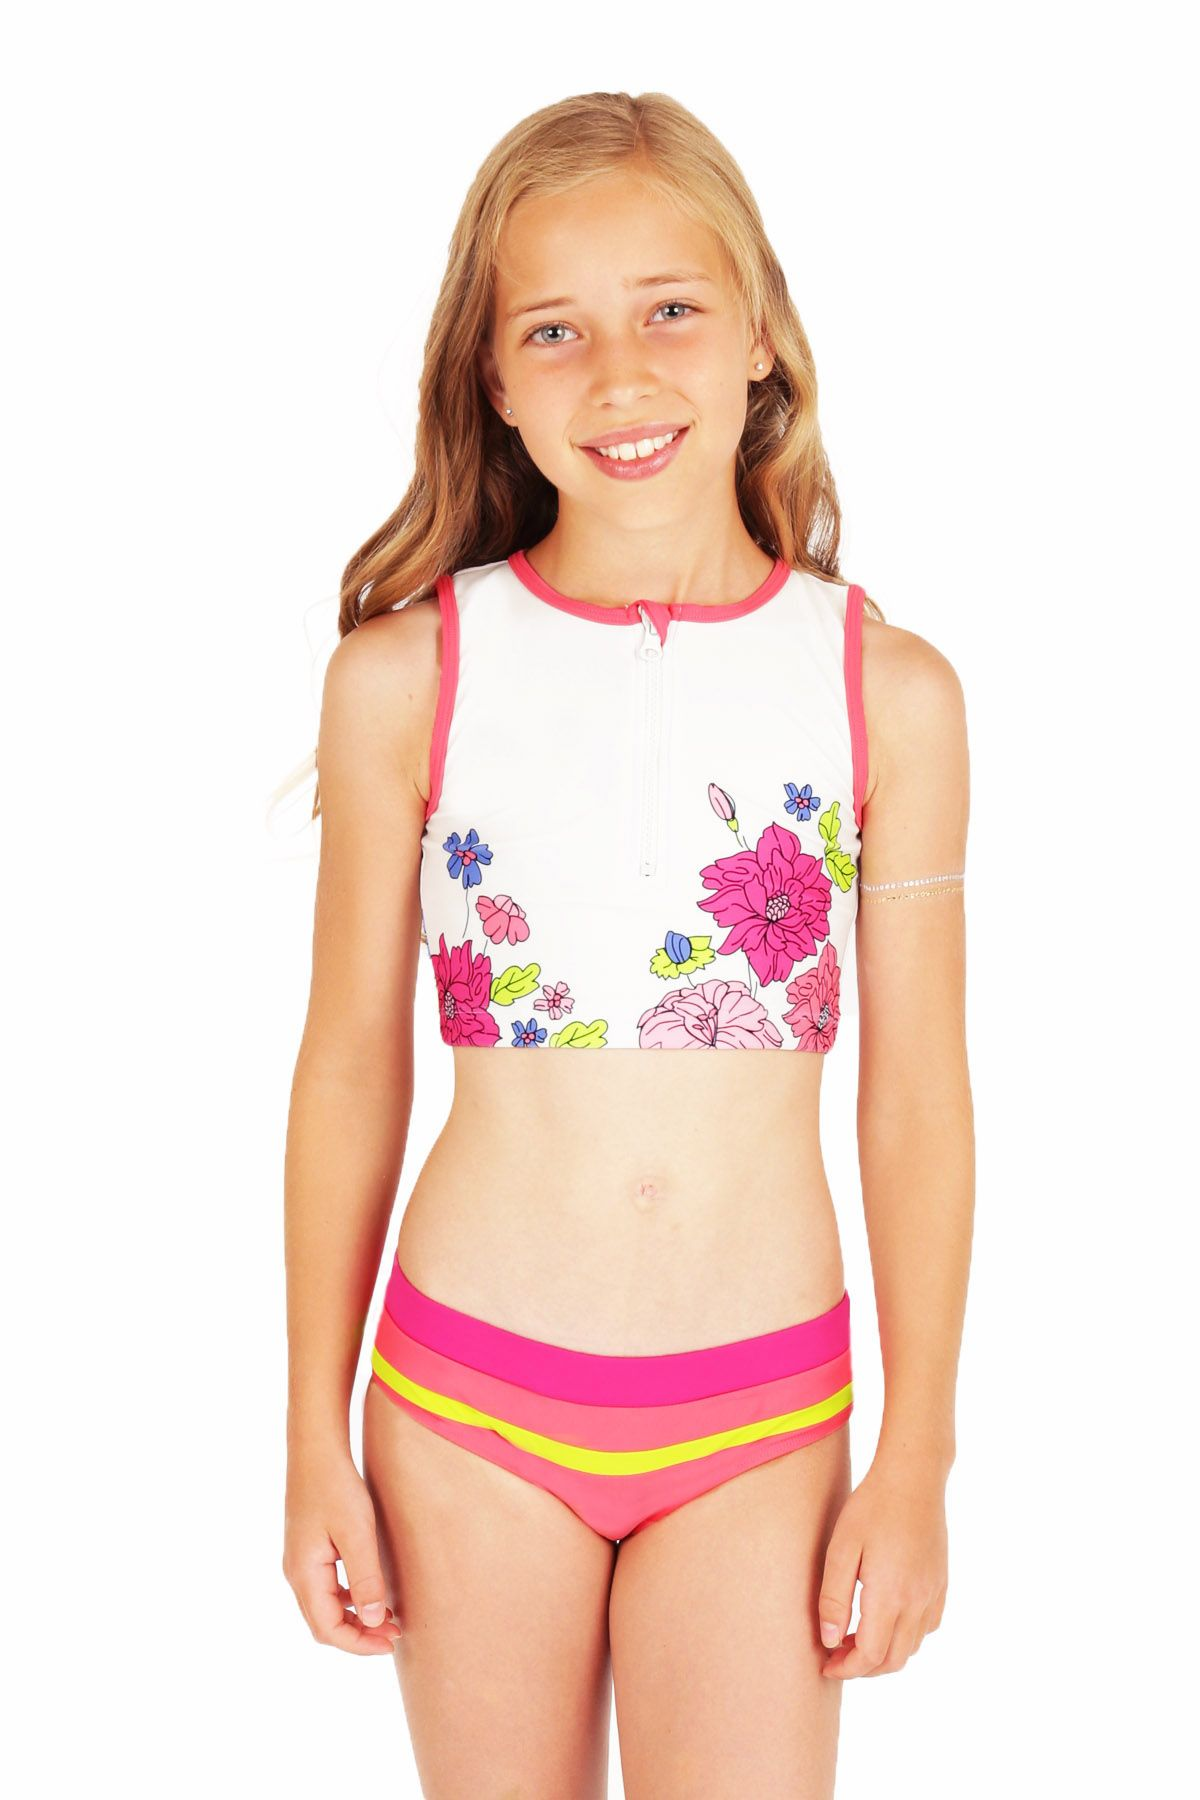 Tween girl swimsuit porn